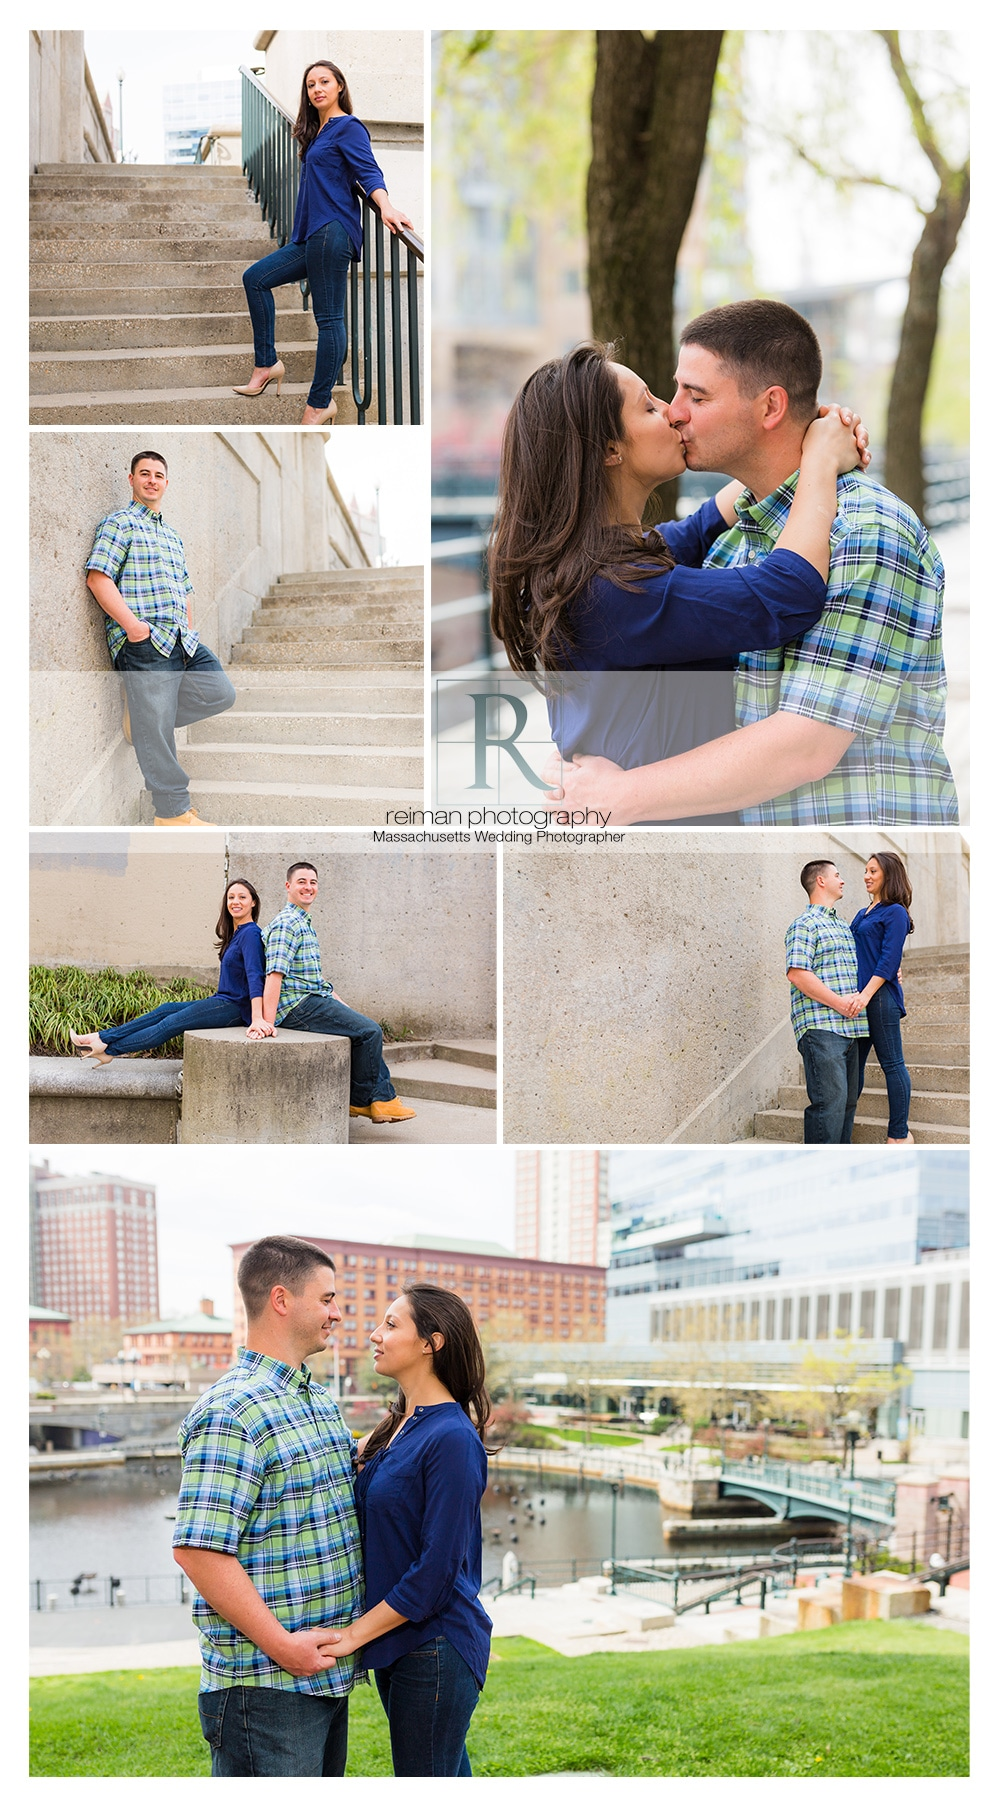 Waterplace Park Engagement, Providence, Rhode Island, Reiman Photography